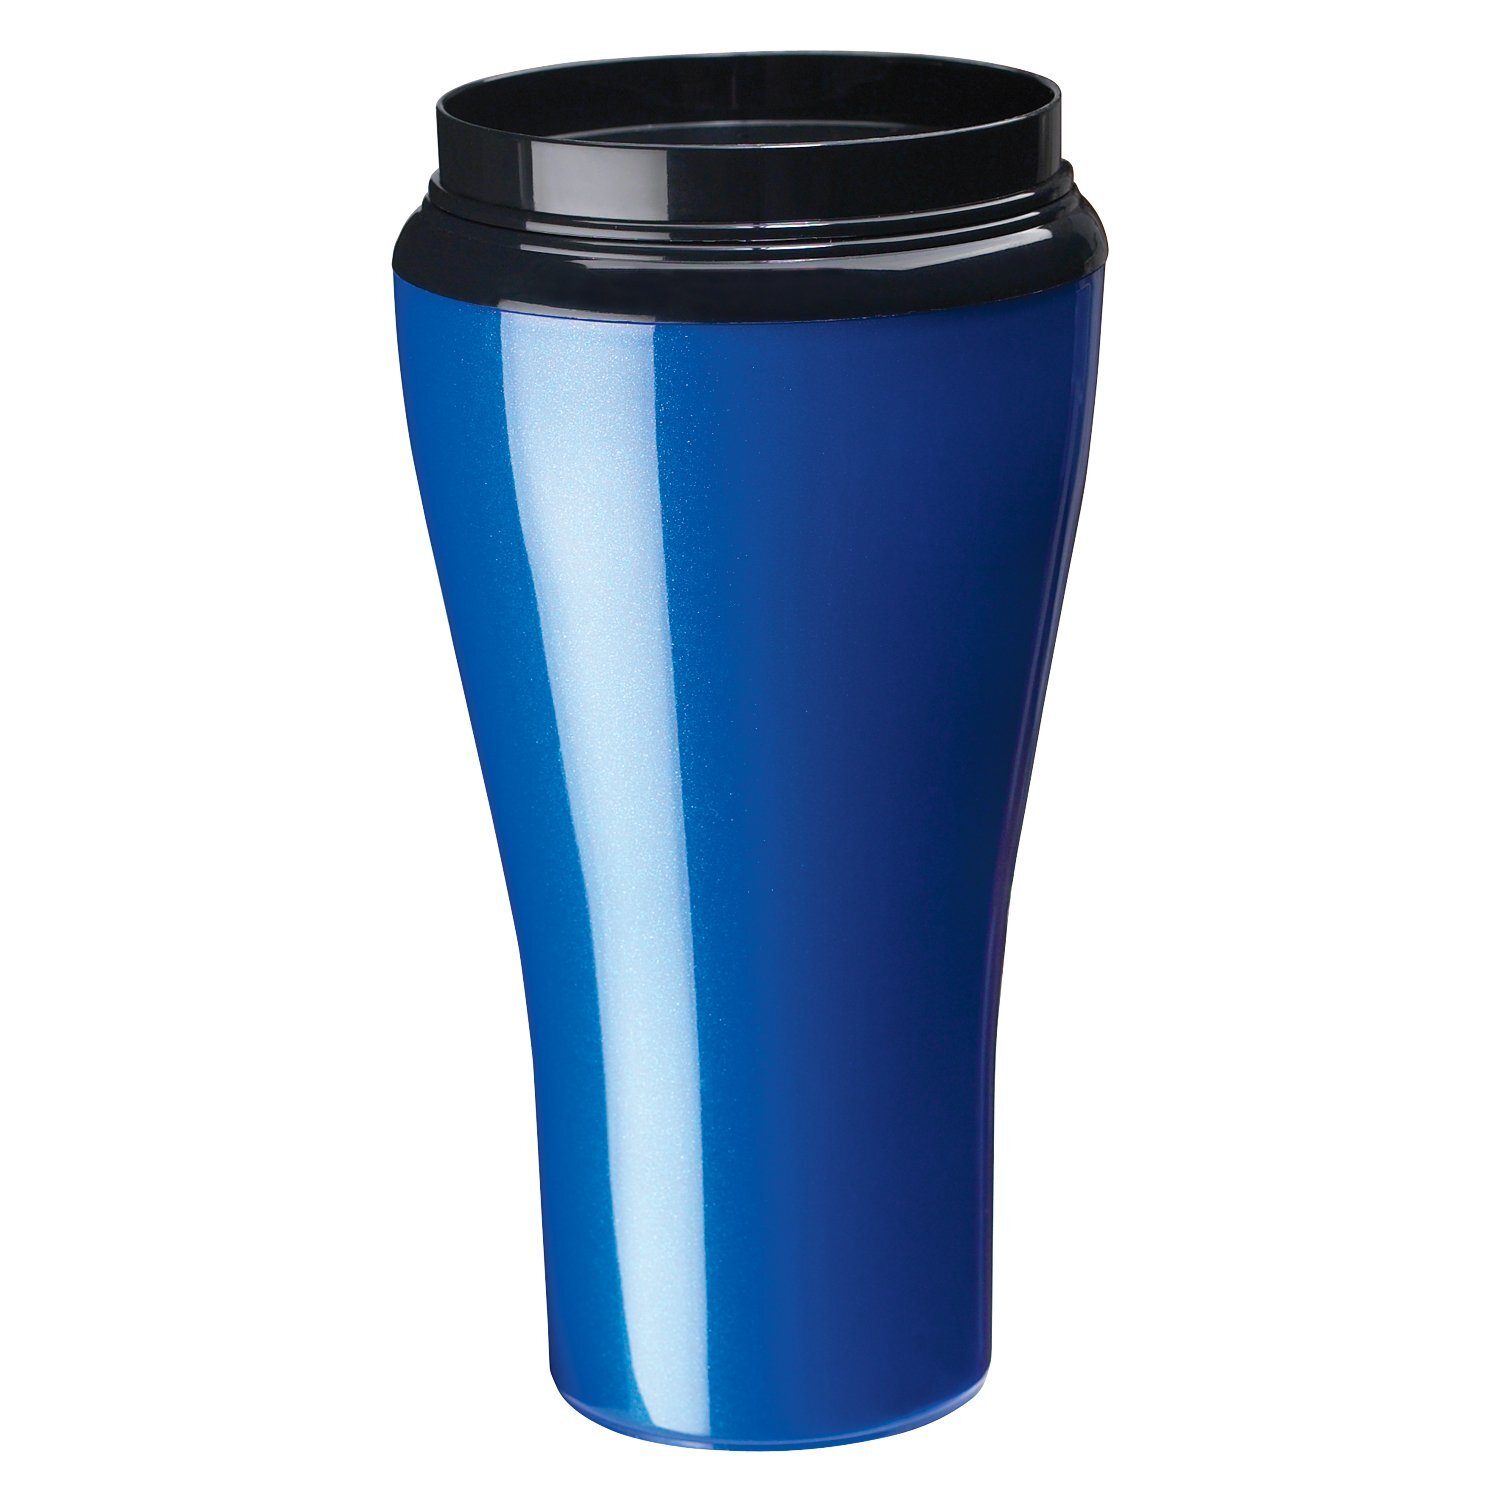 Good Time Tumbler, 16oz., BPA Free